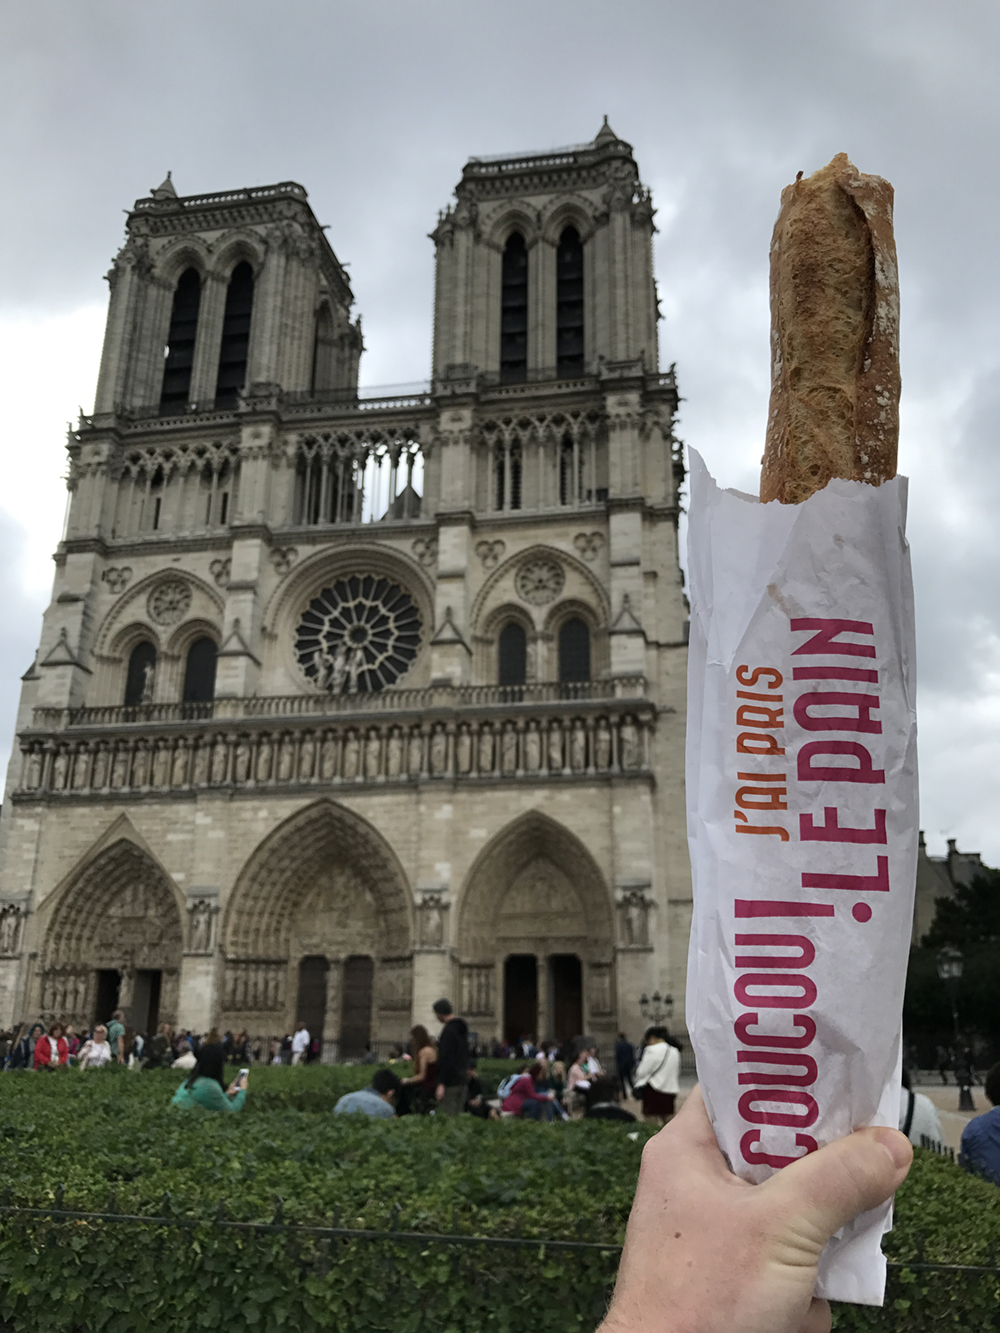 the event was beside Notre Dame